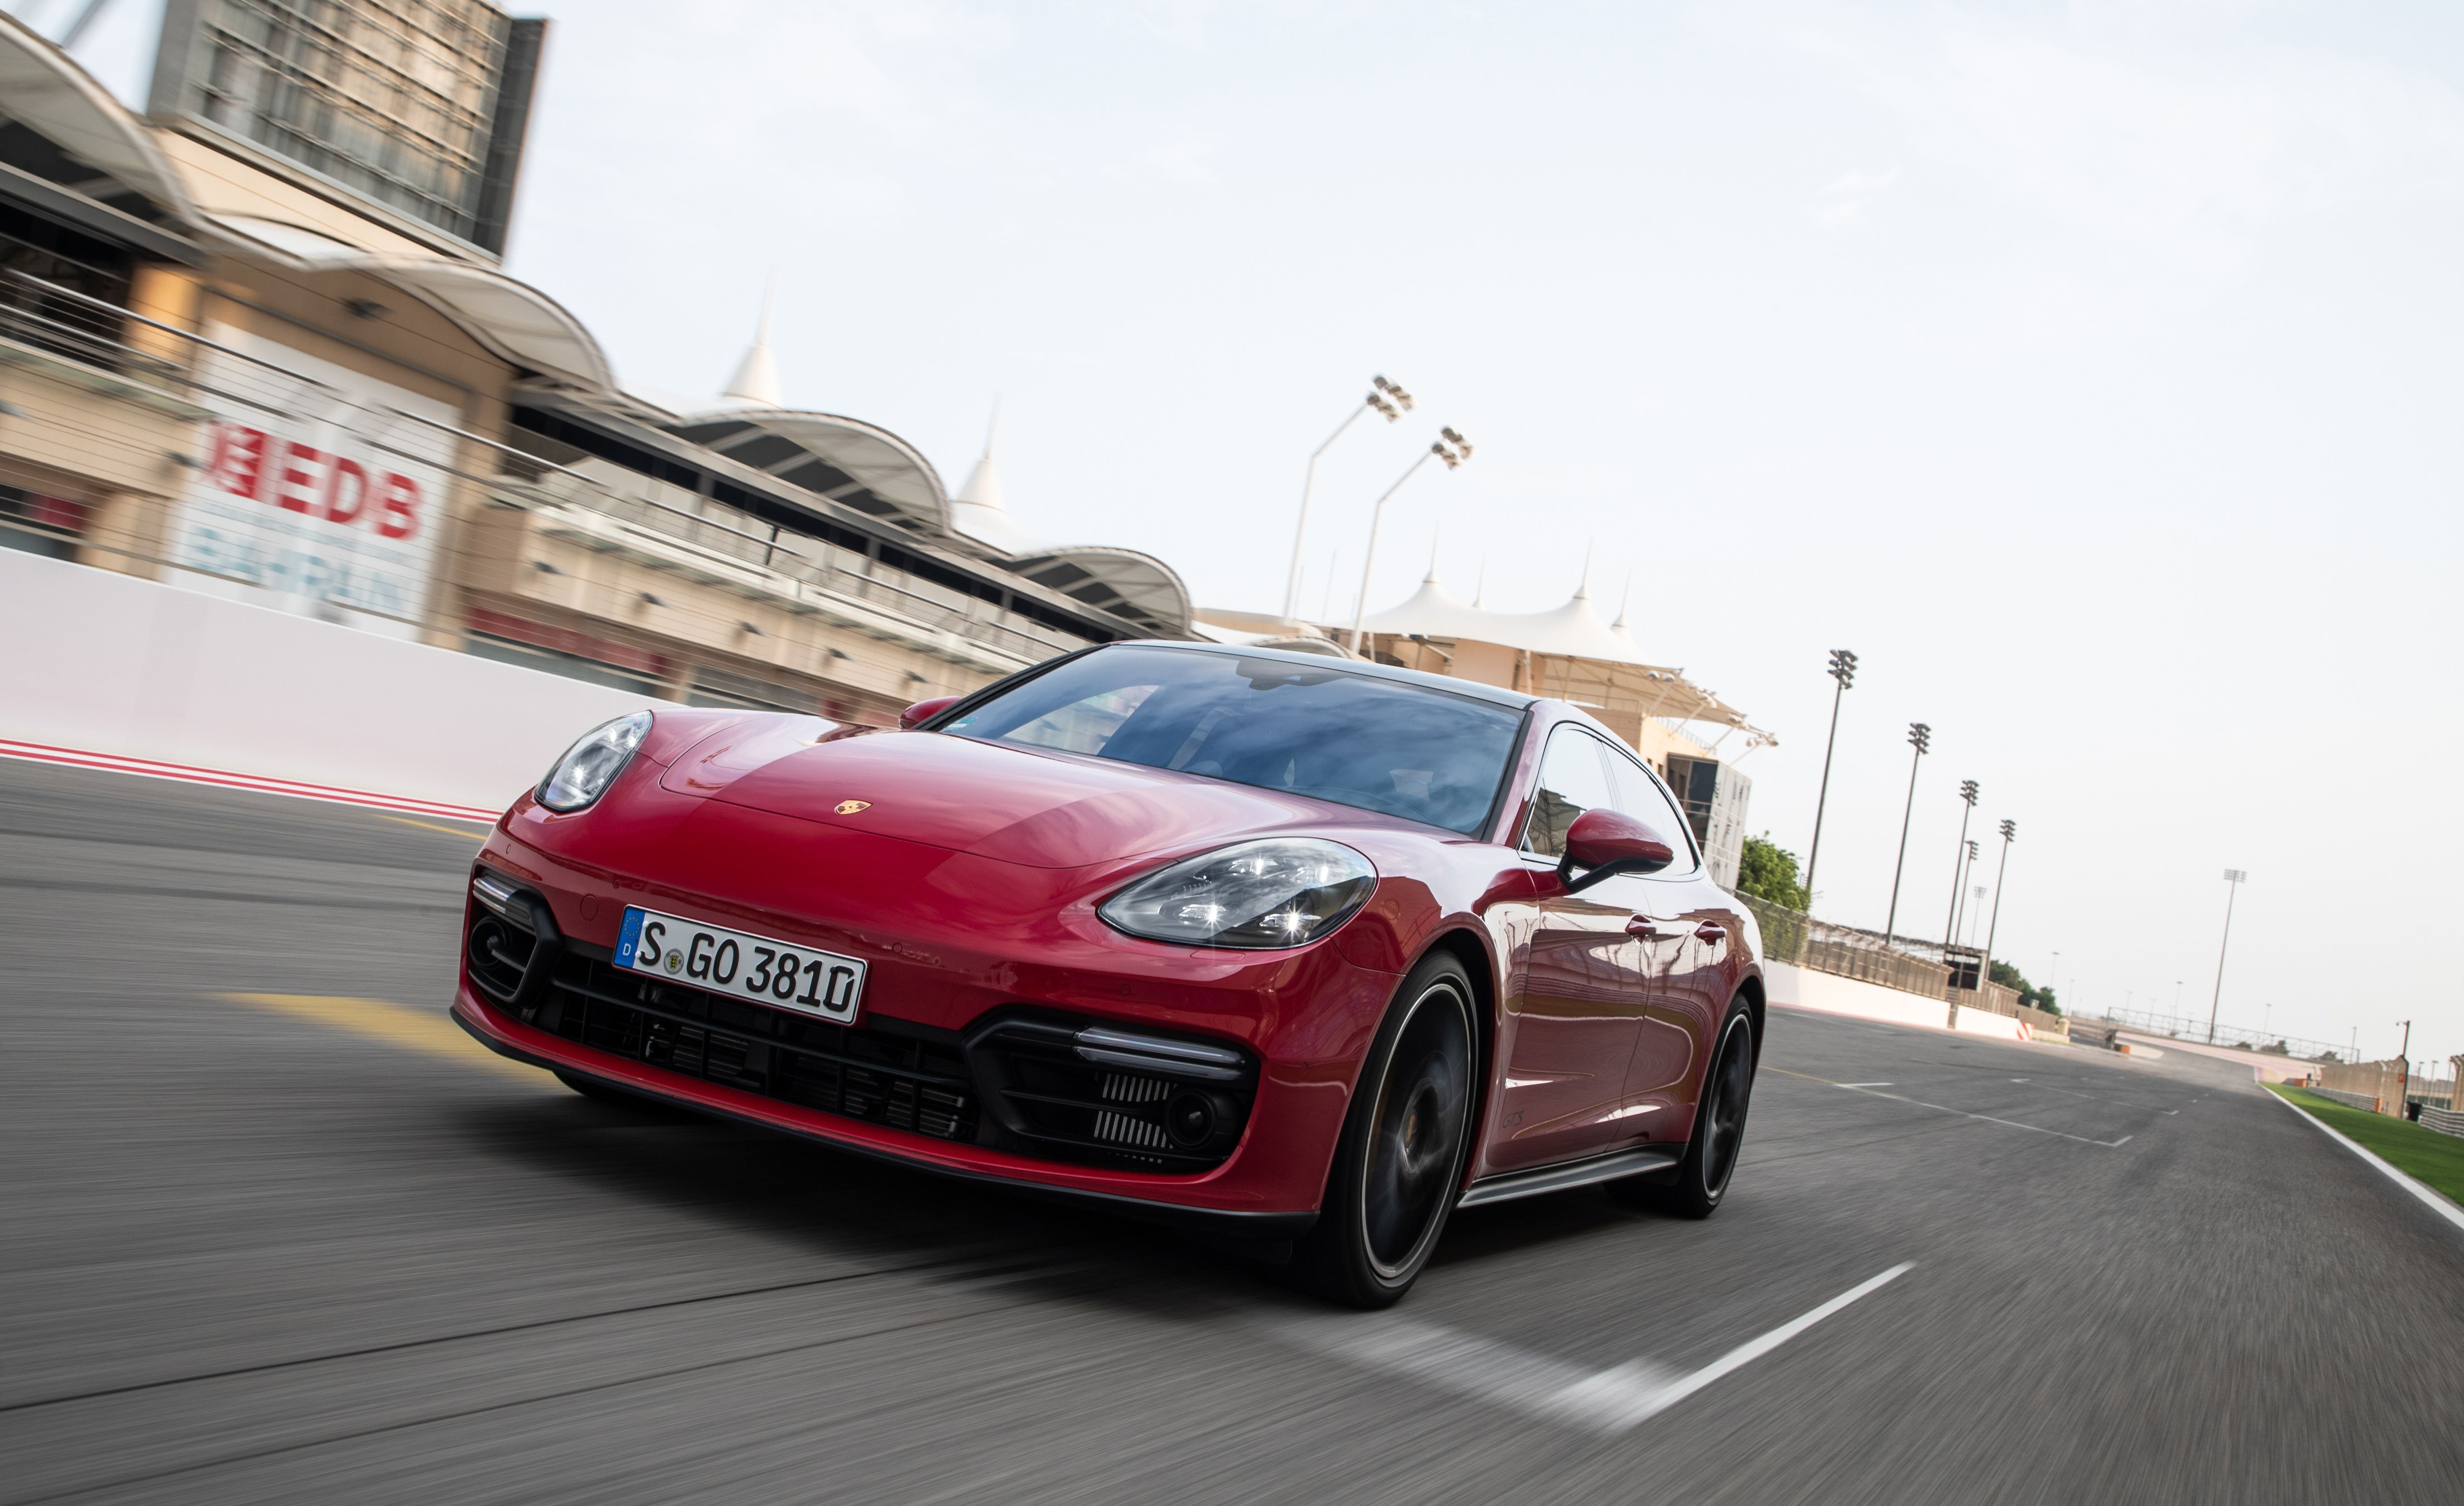 2019 Porsche Panamera GTS Sport Turismo Front Three-Quarter Wallpapers (1)